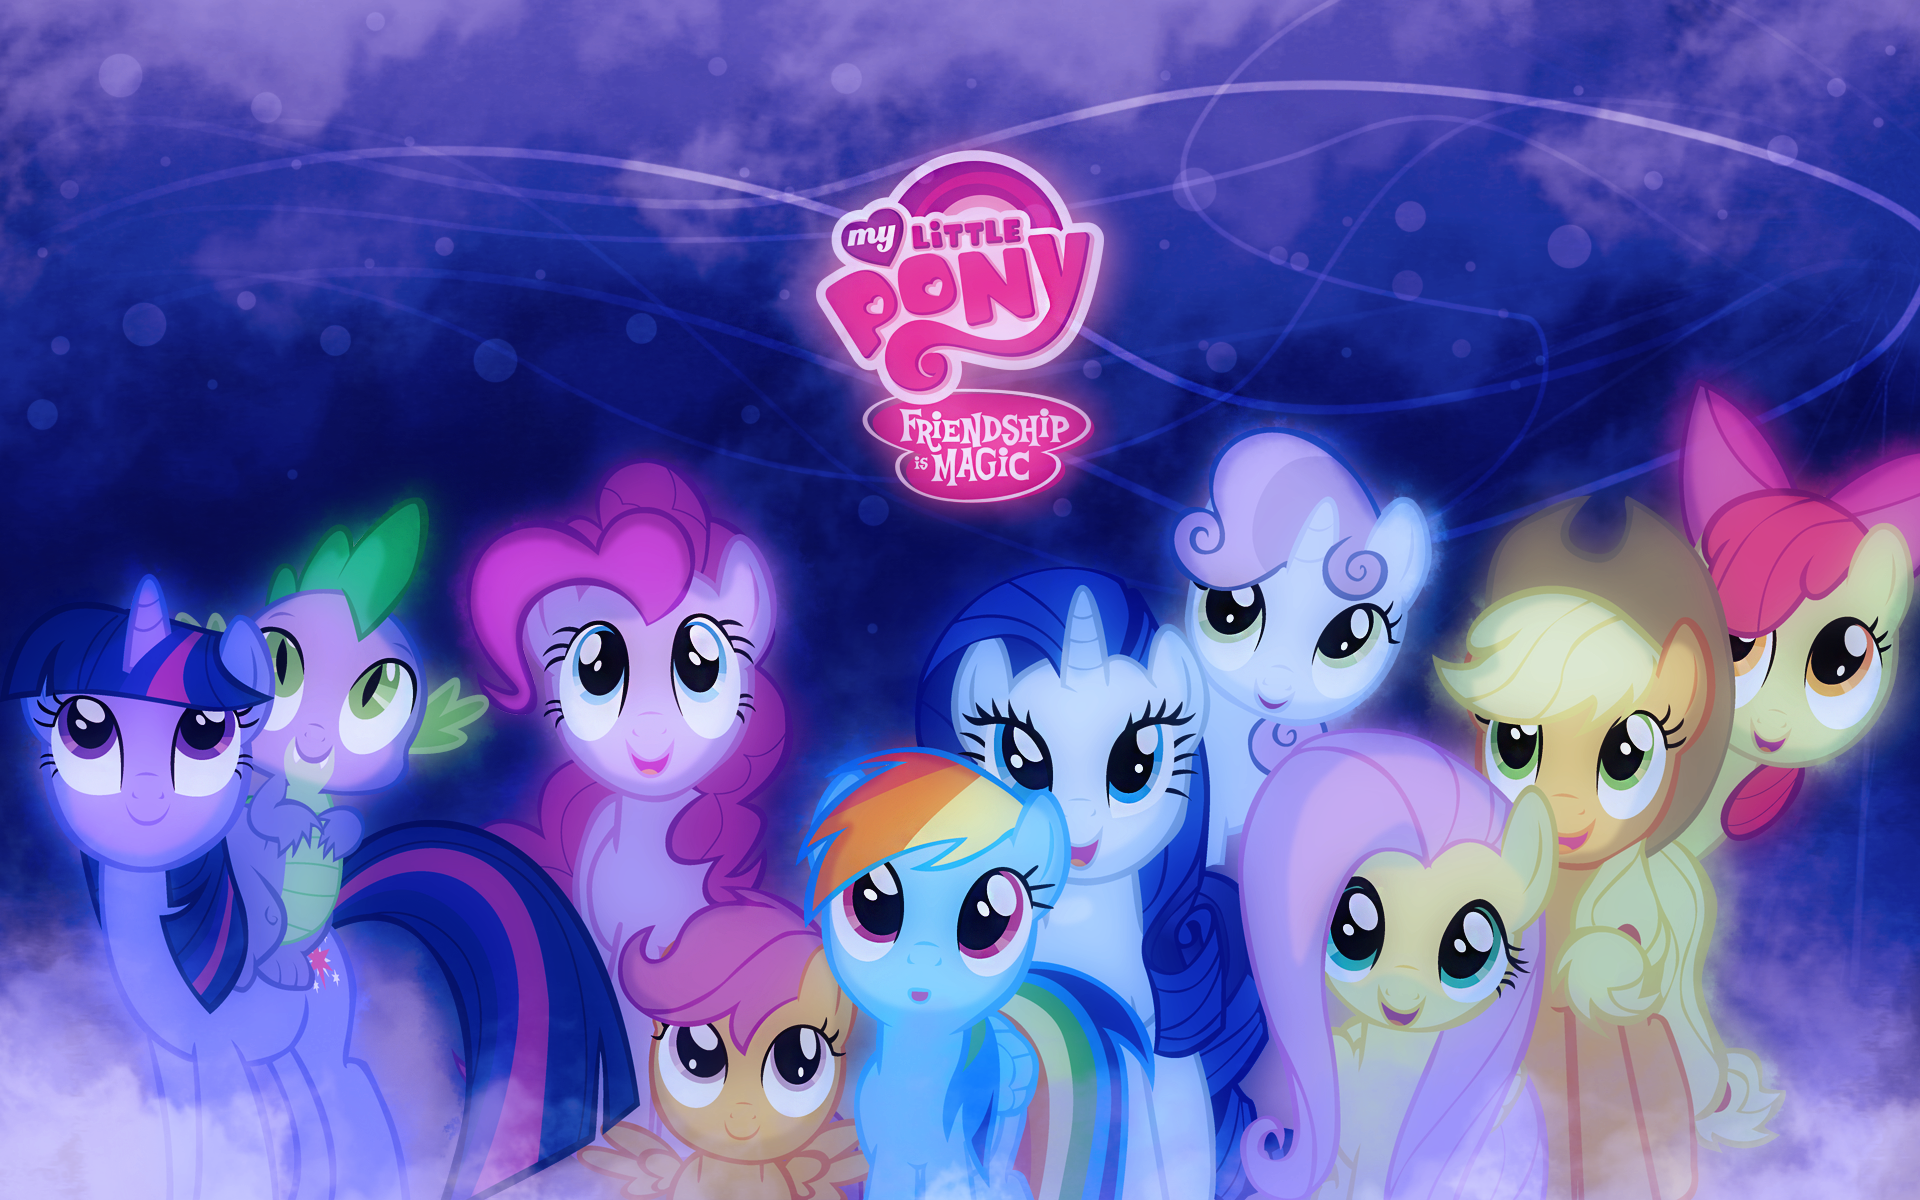 My little pony friendship is magic wallpapers